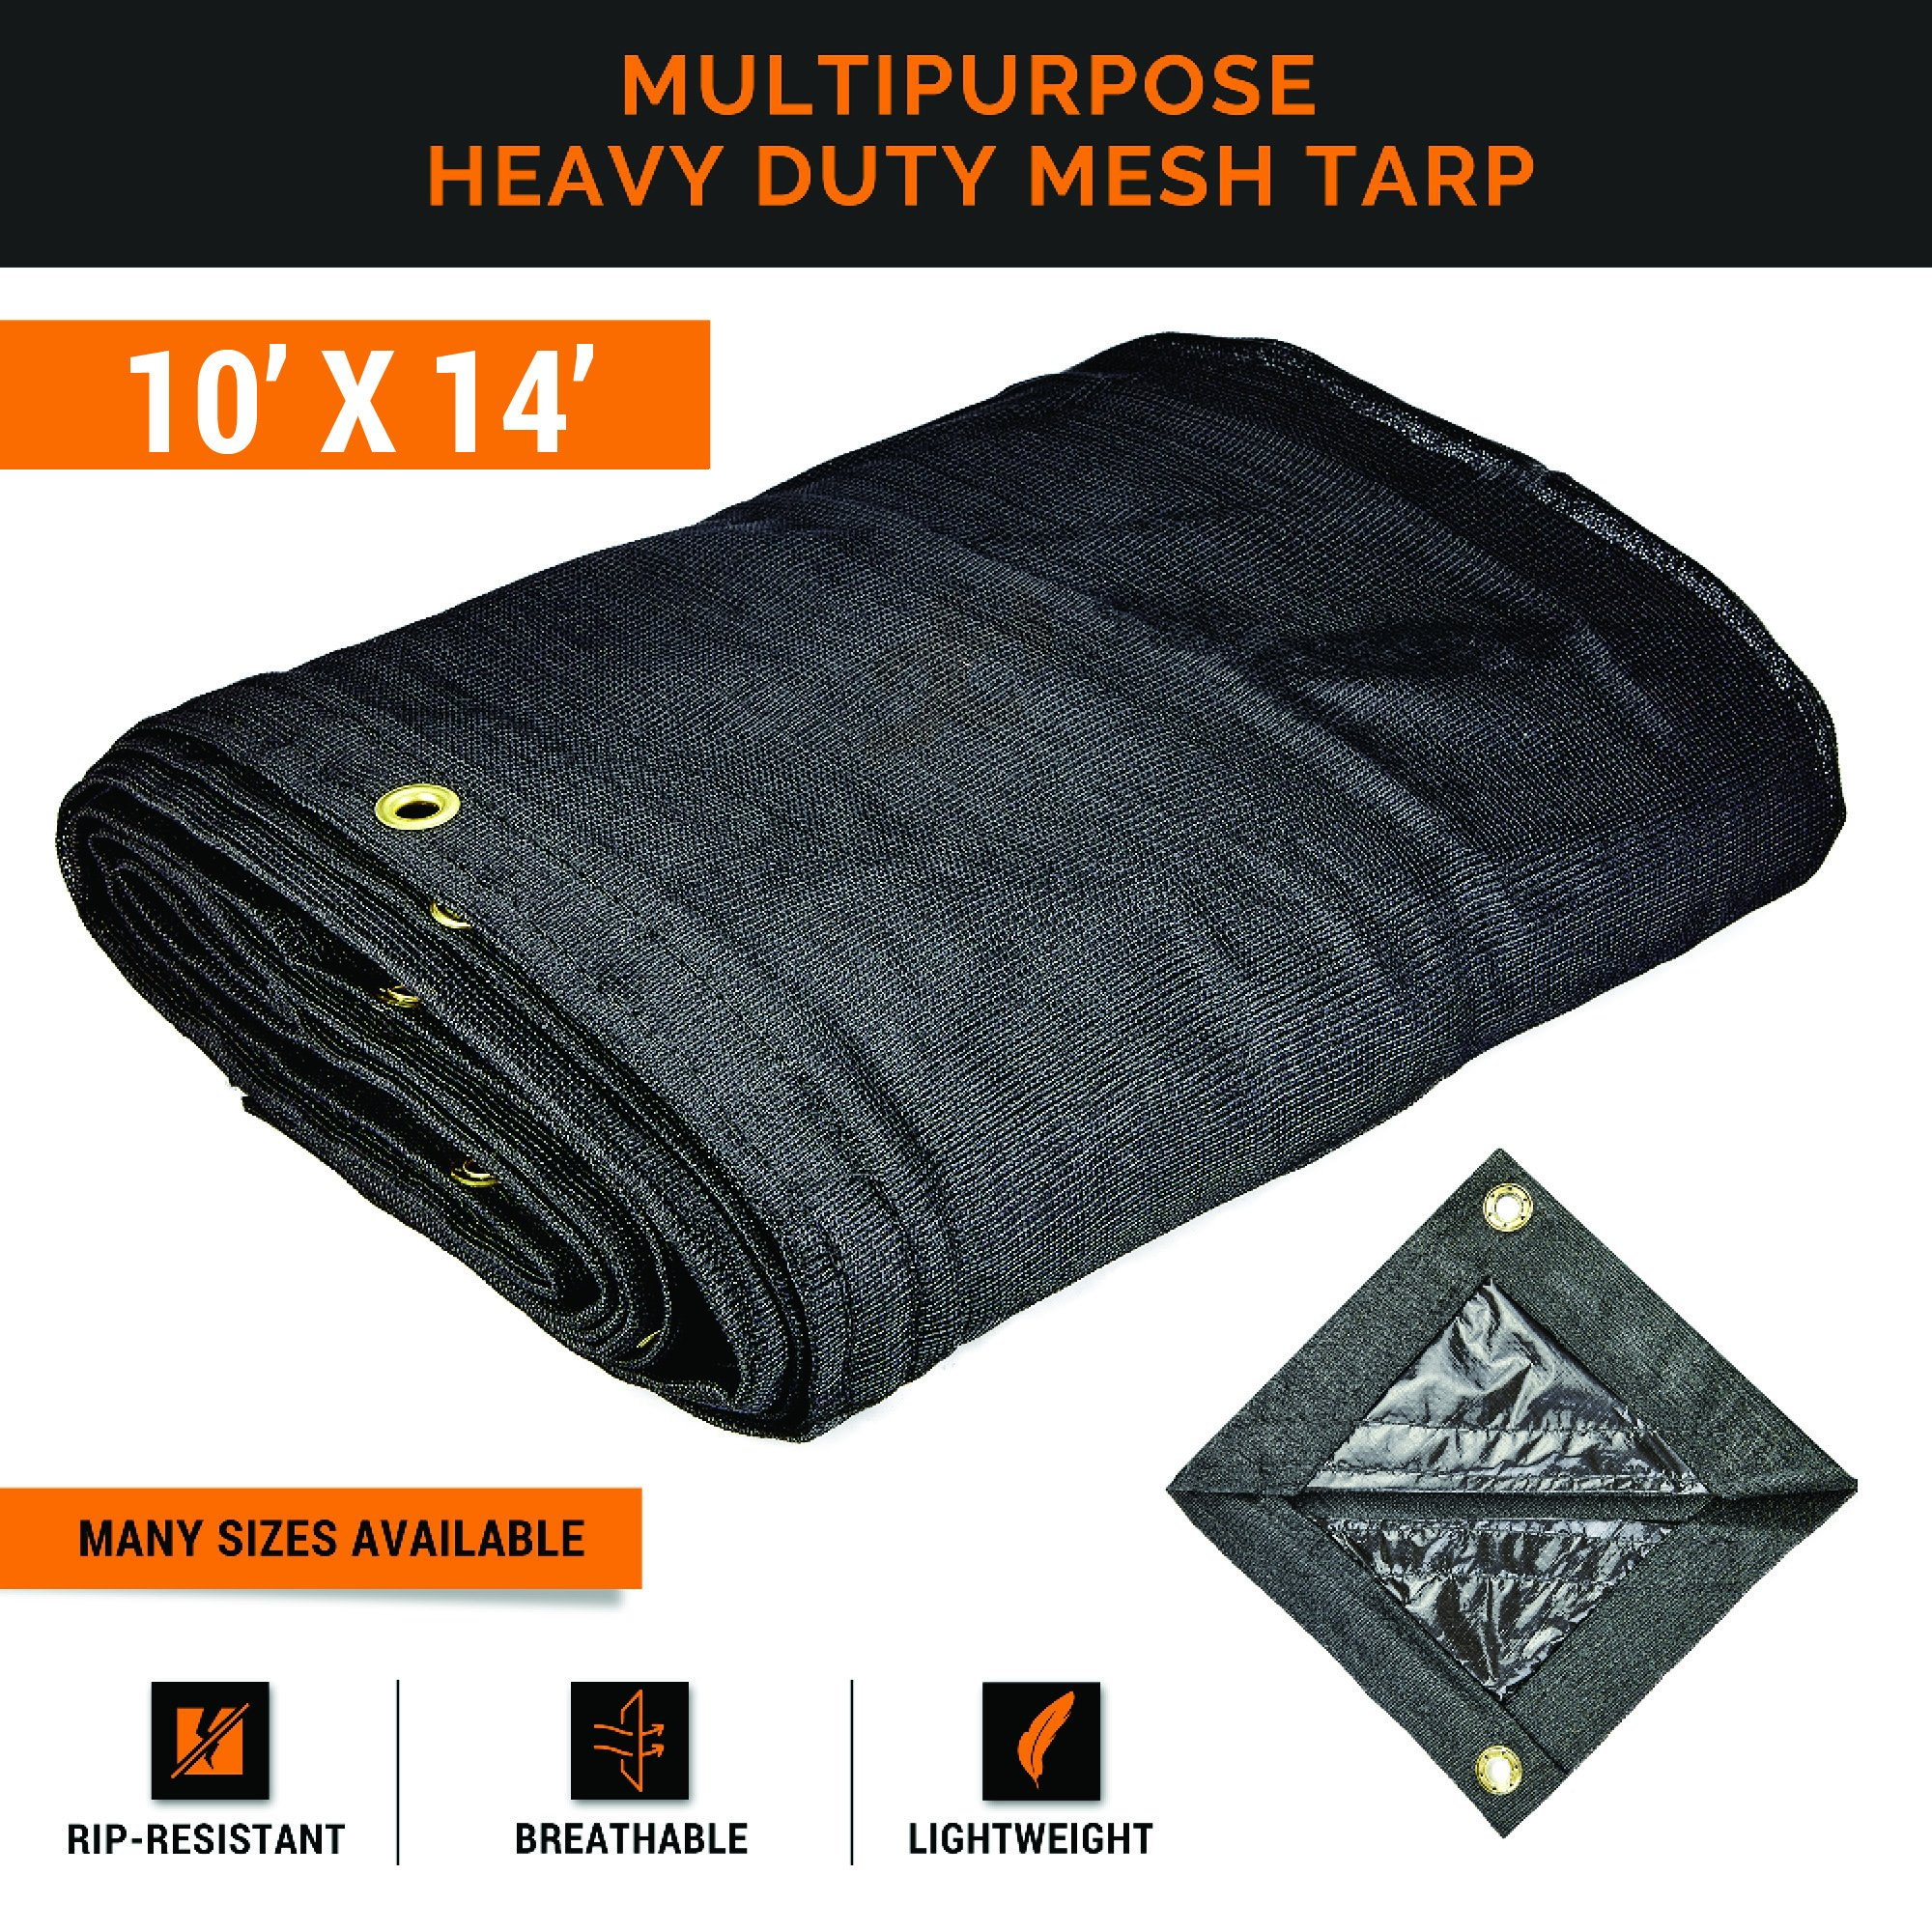 Xpose Safety Heavy Duty Mesh Tarp – 10' x 14' Multipurpose Black Protective Cover with Air Flow - Use for Tie Downs, Shade, Fences, Canopies, Dump Trucks – Waterproof, Weather and Tear Resistant